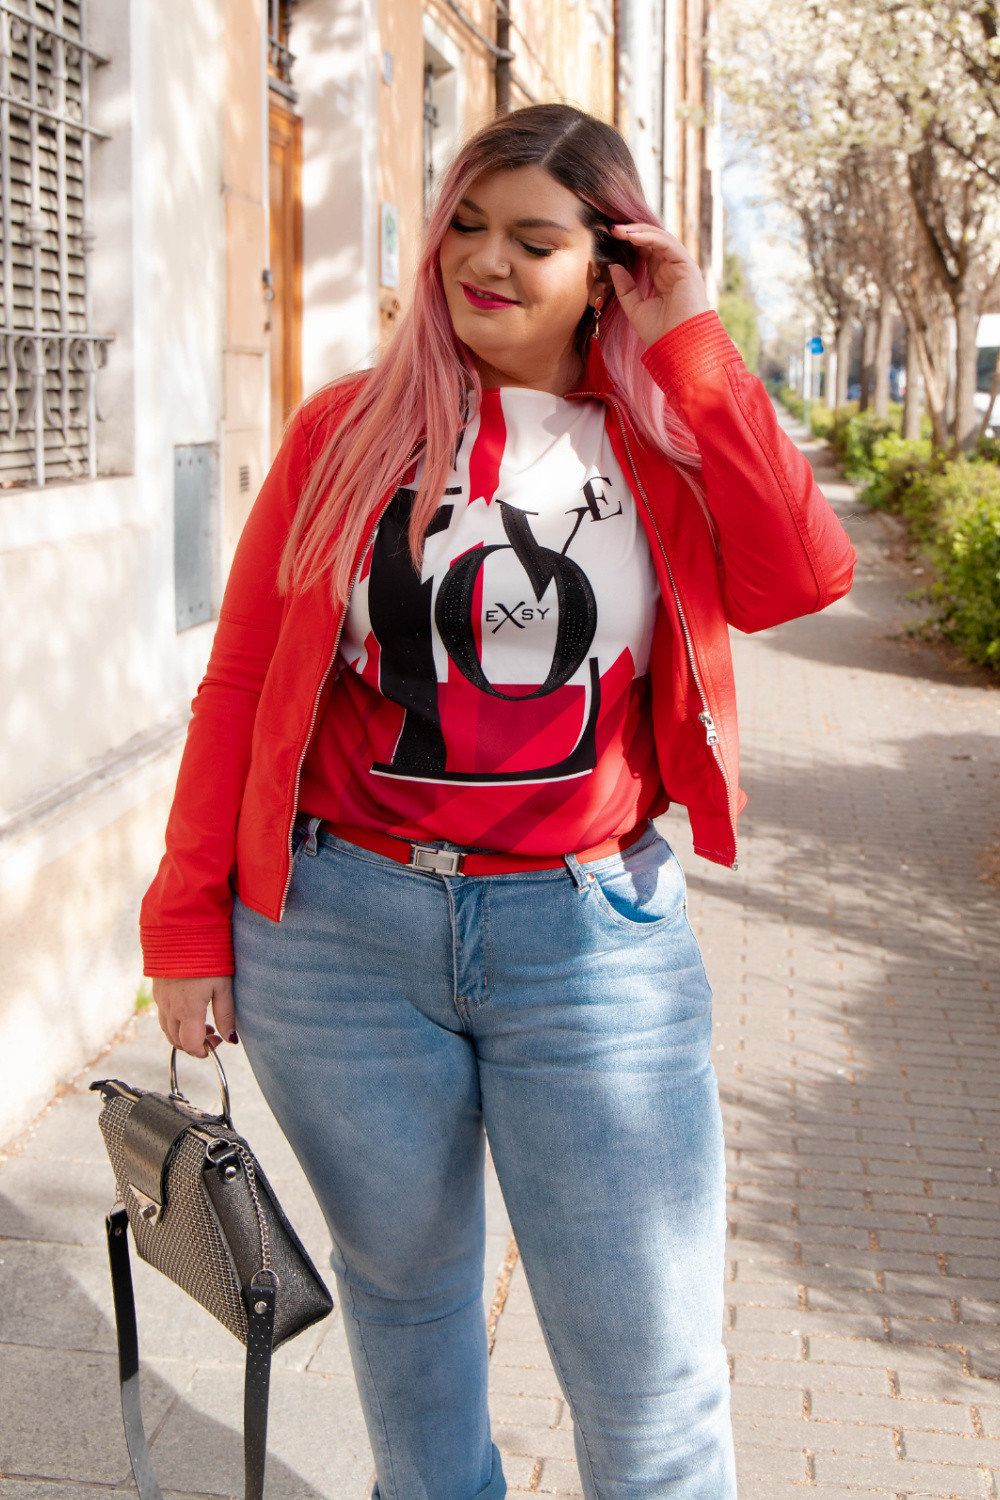 outfit casual sportivo Exsy curvy plus size (4)